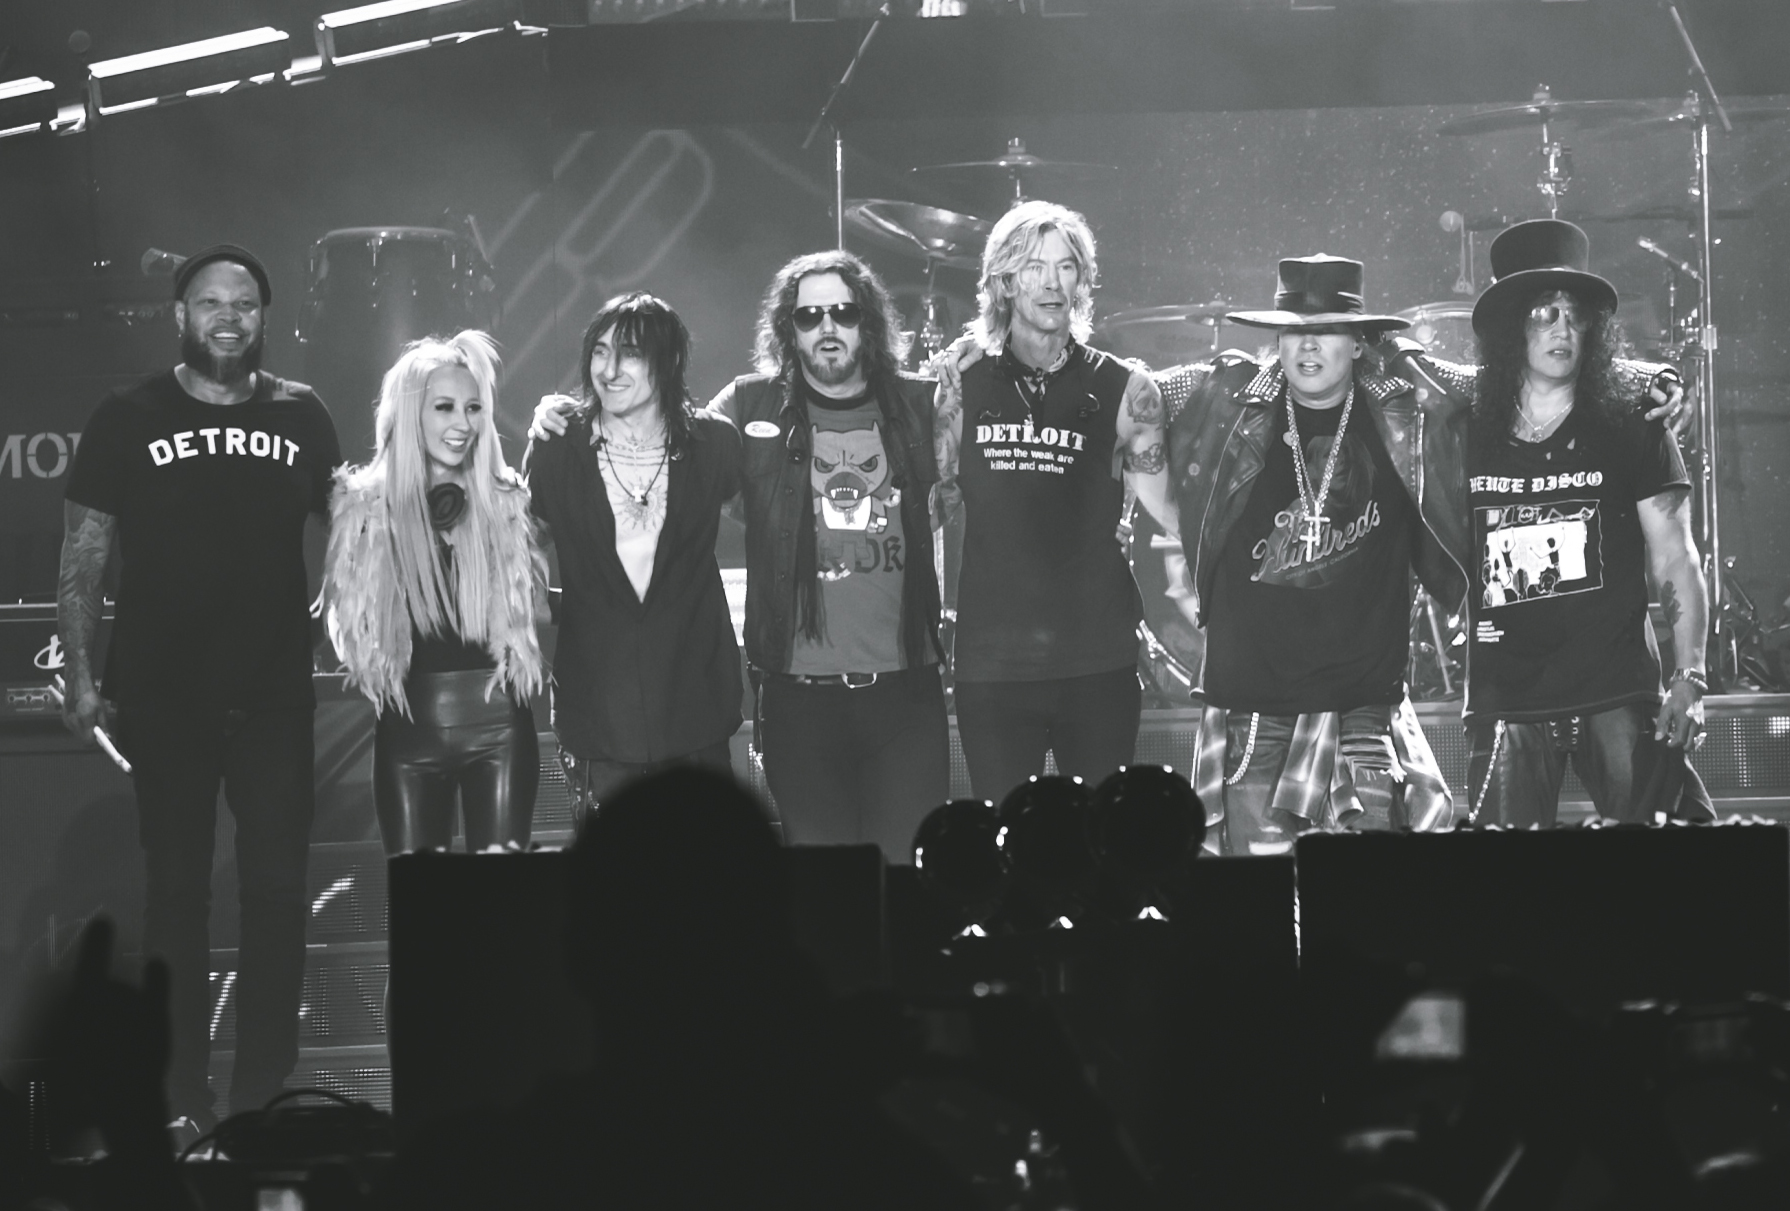 Guns N Roses Kick Off 'Not In This Lifetime Tour' In Neighboring Detroit